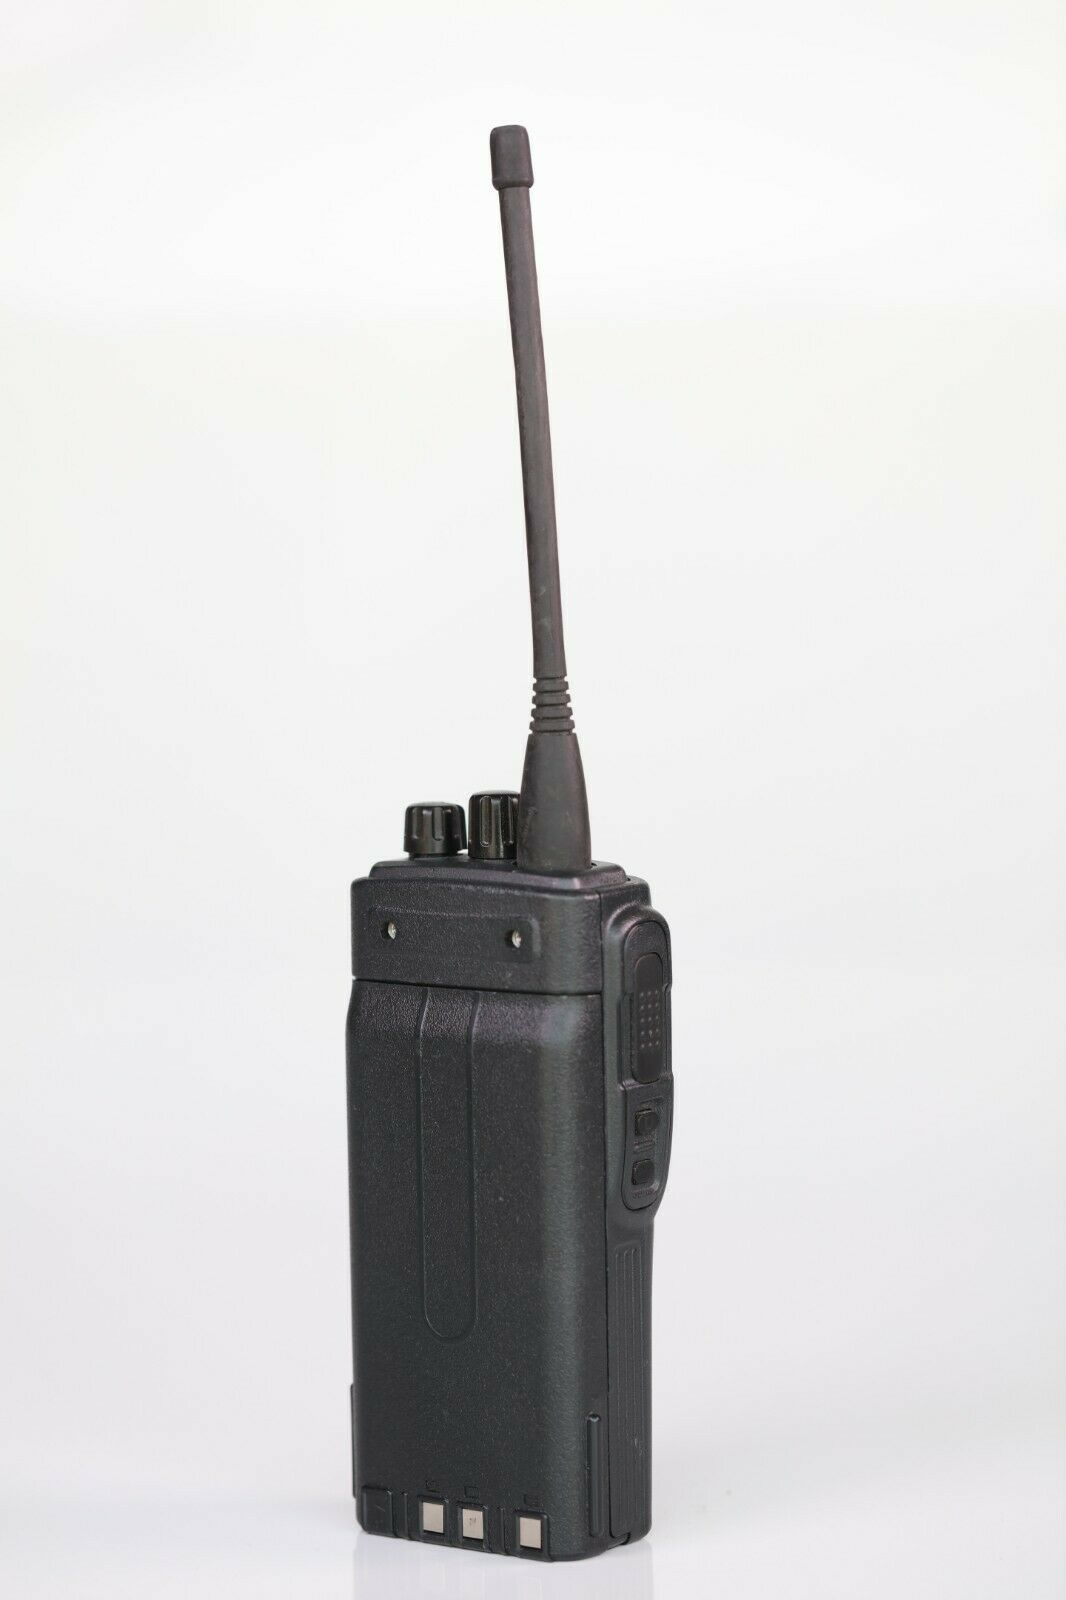 Kenwood TK-370G UHF 128Ch No Charger